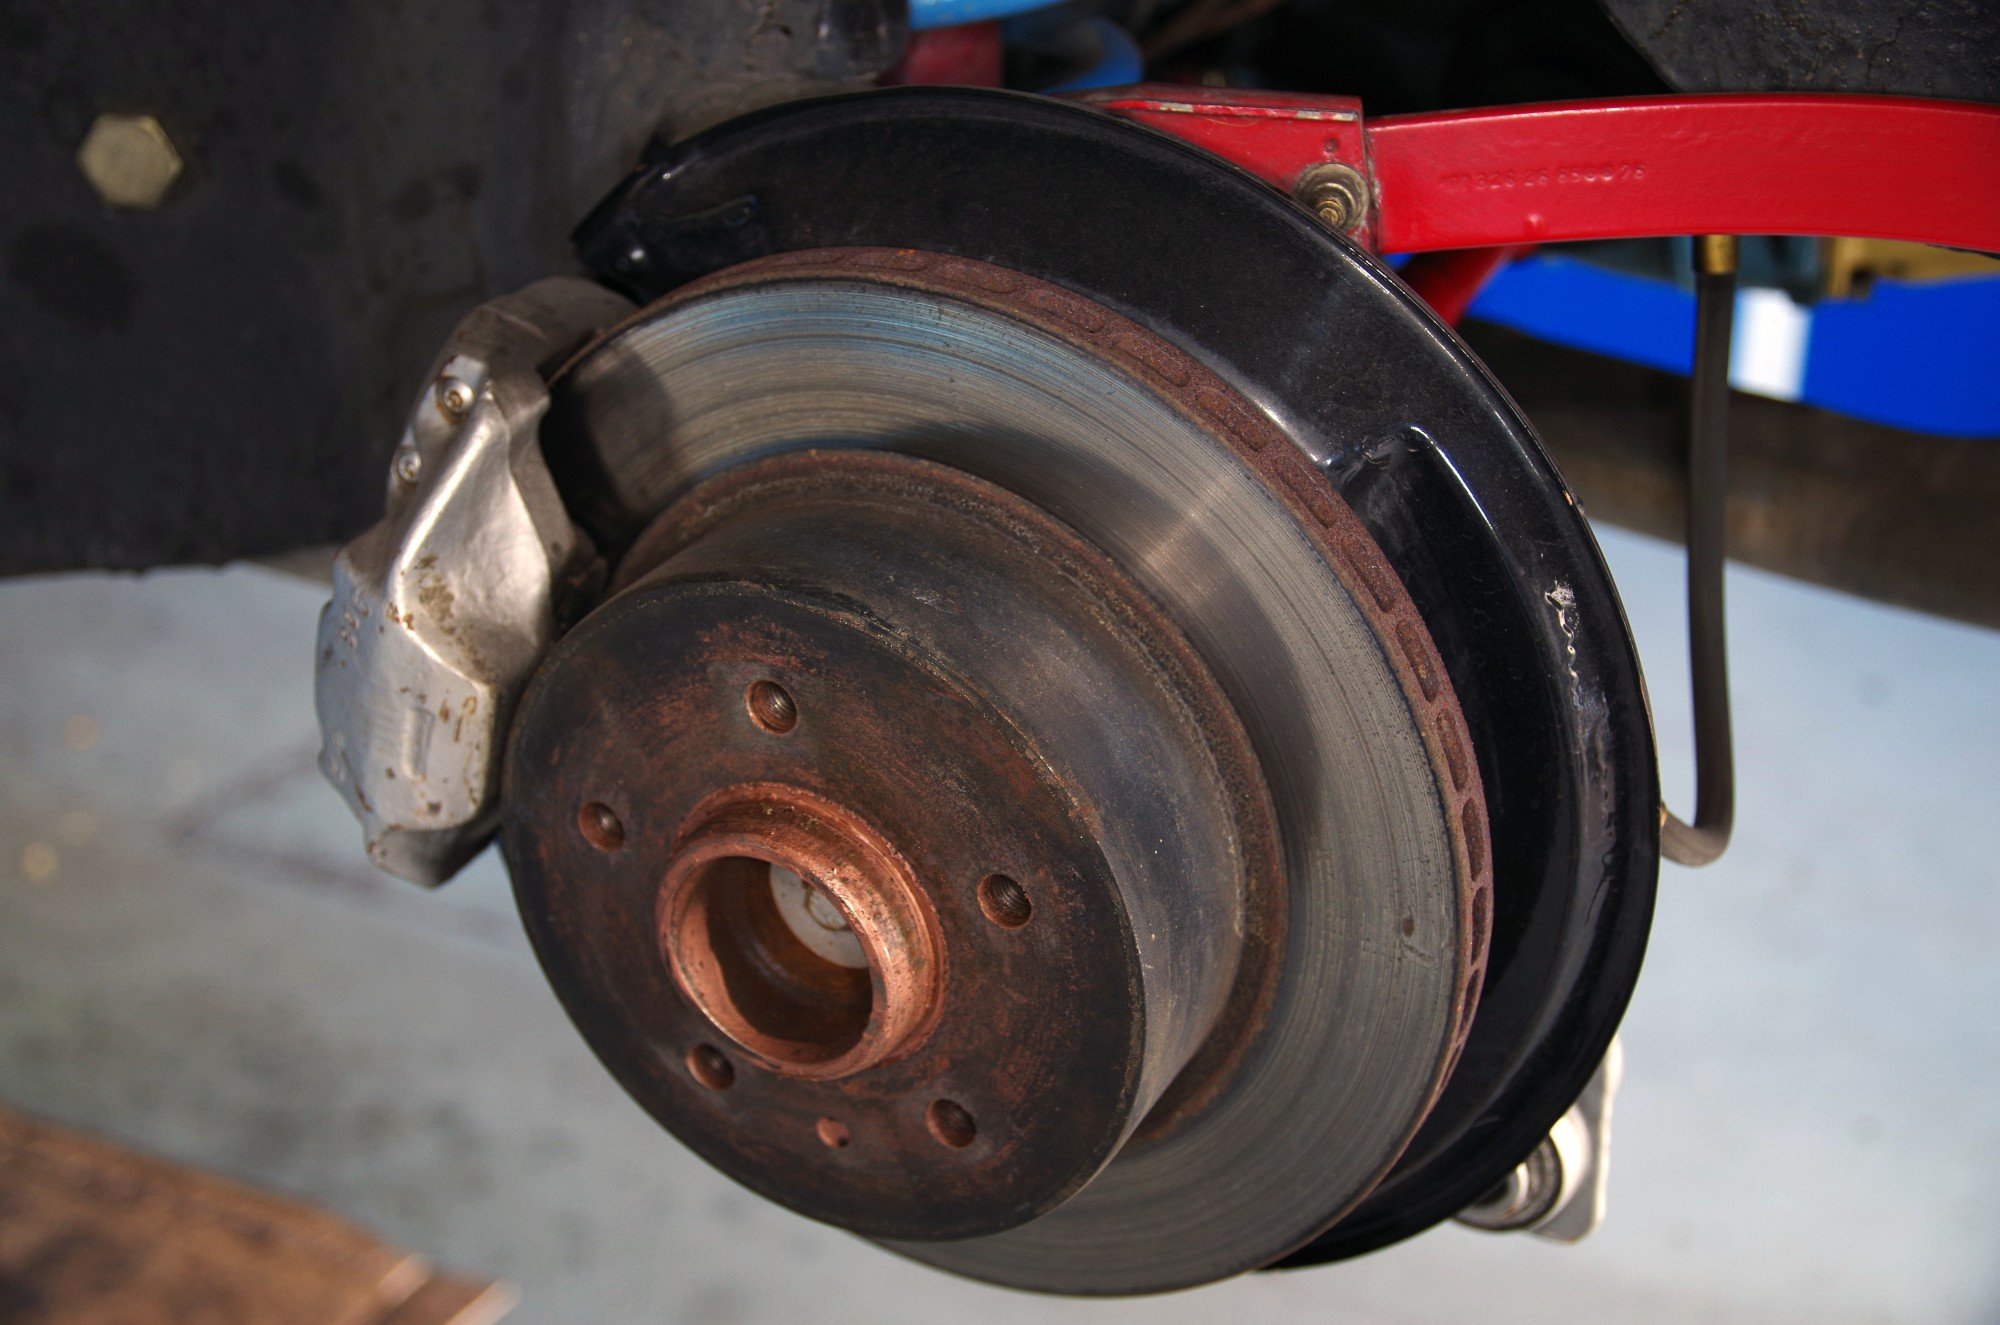 Stop! The Warning Signs You Need New Brakes